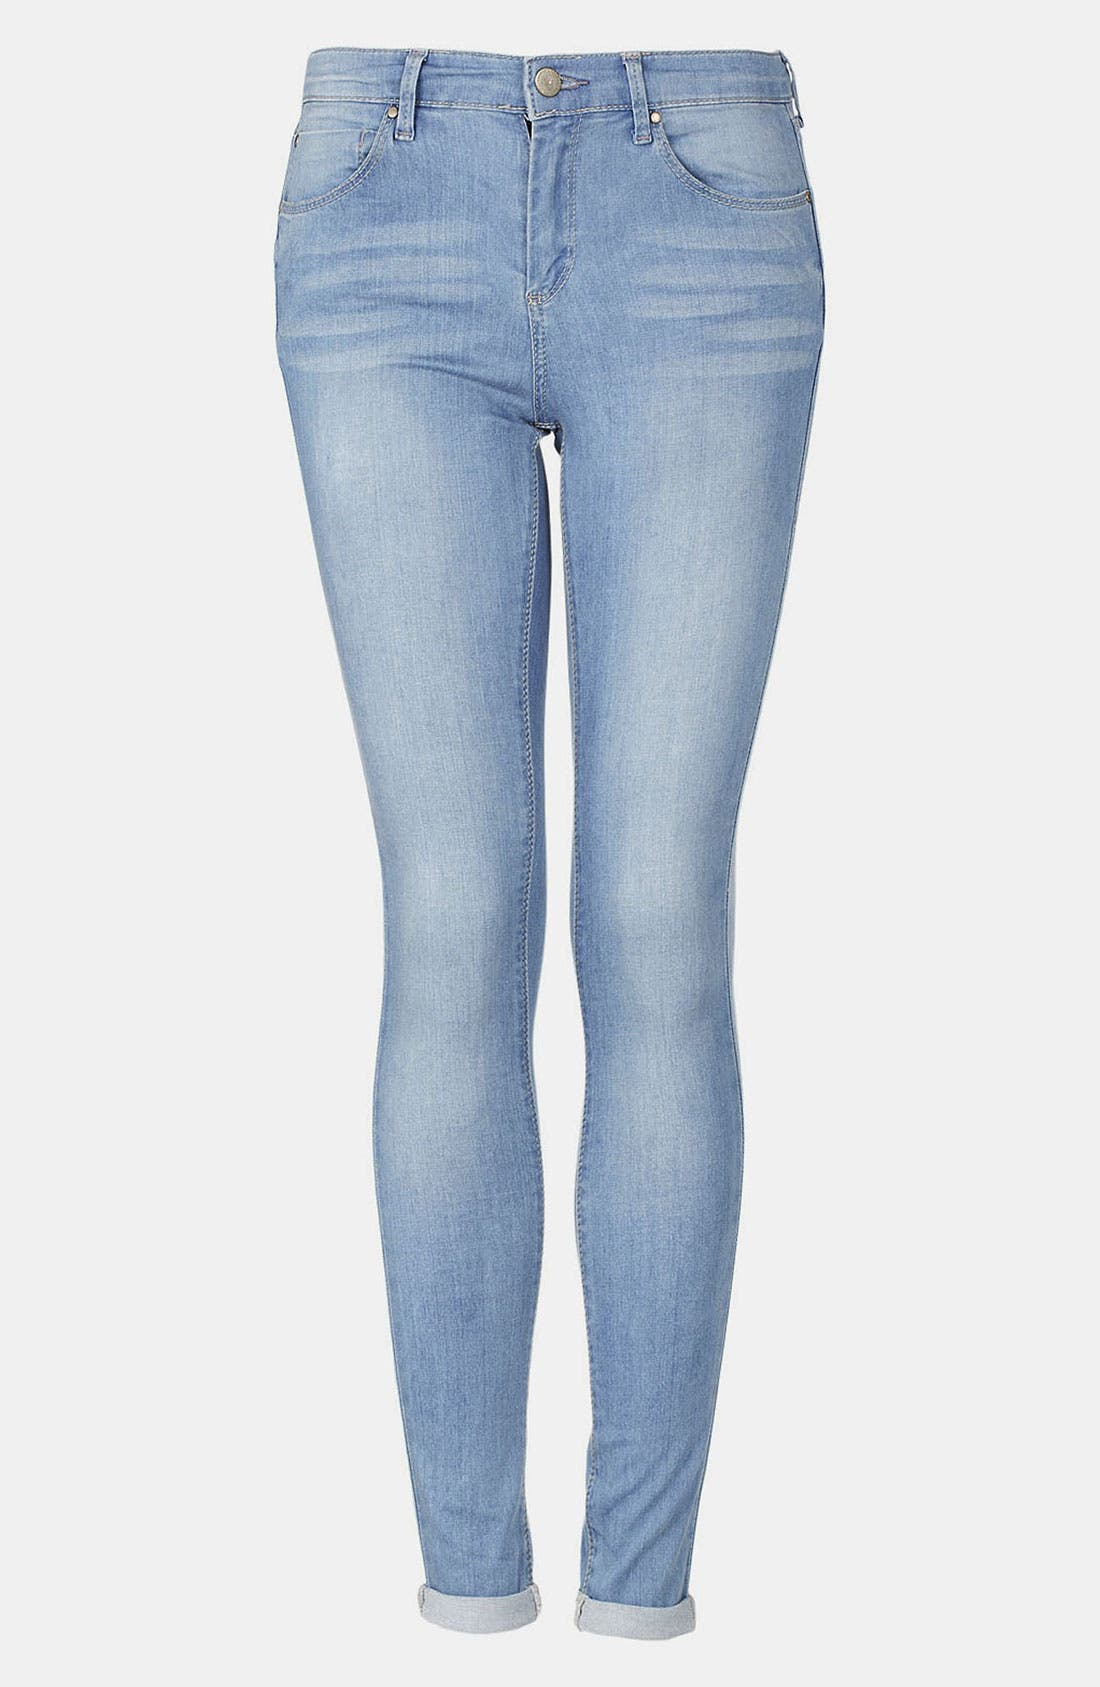 Alternate Image 1 Selected - Topshop Moto 'Leigh' Bleach Wash Skinny Jeans (Regular & Short)